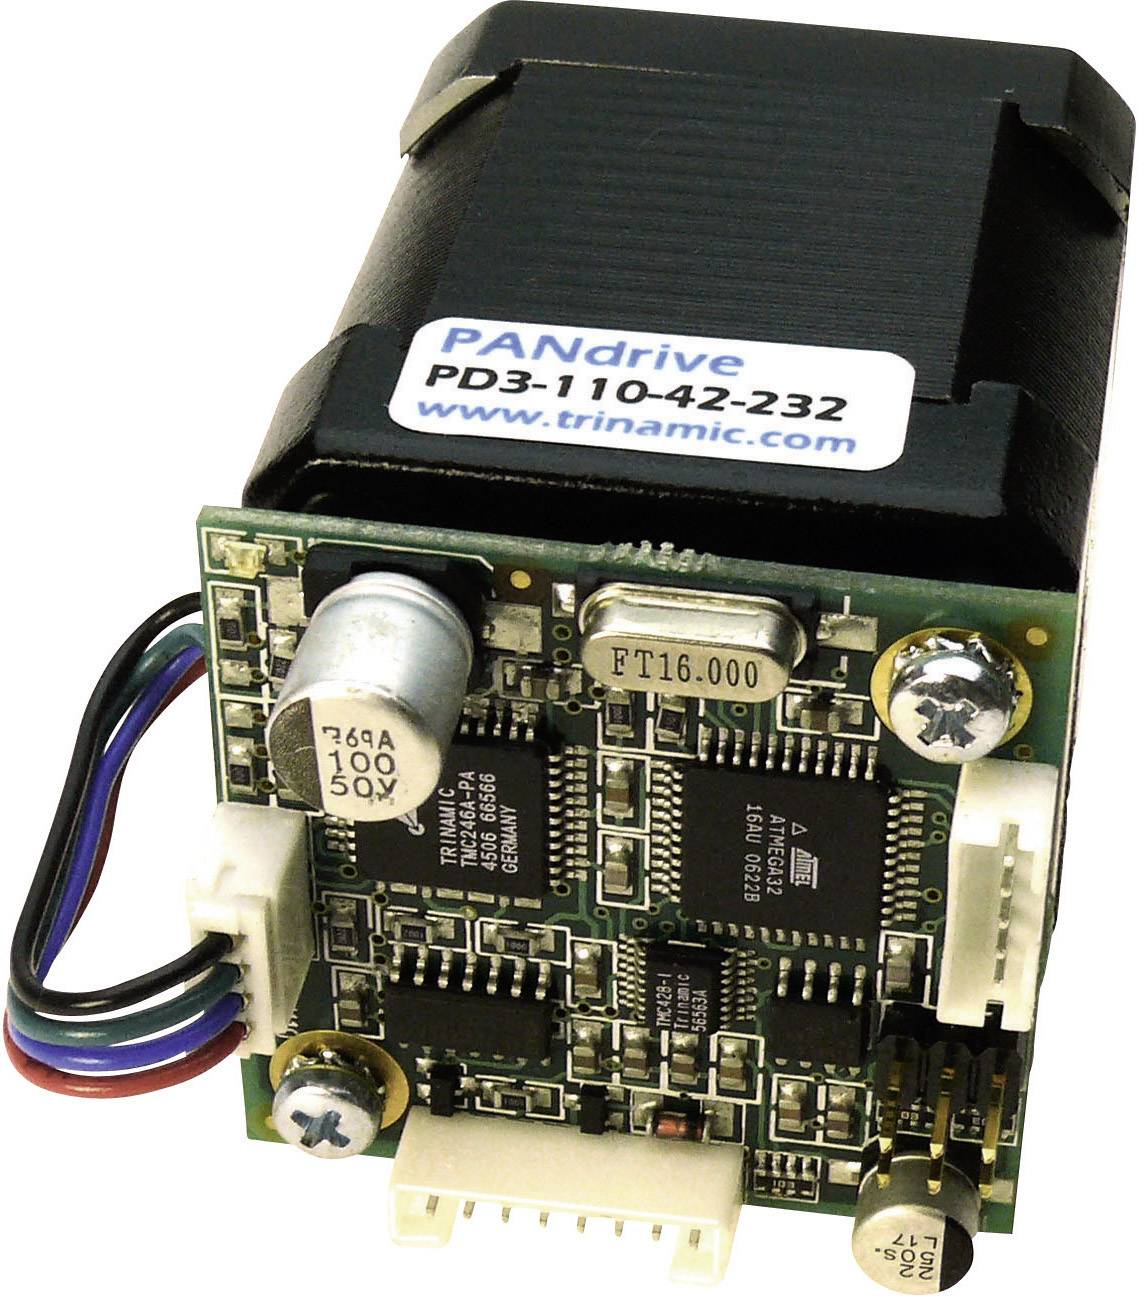 PANDRIVE 42 mm, RS232, 0,26 NM GATEWAY